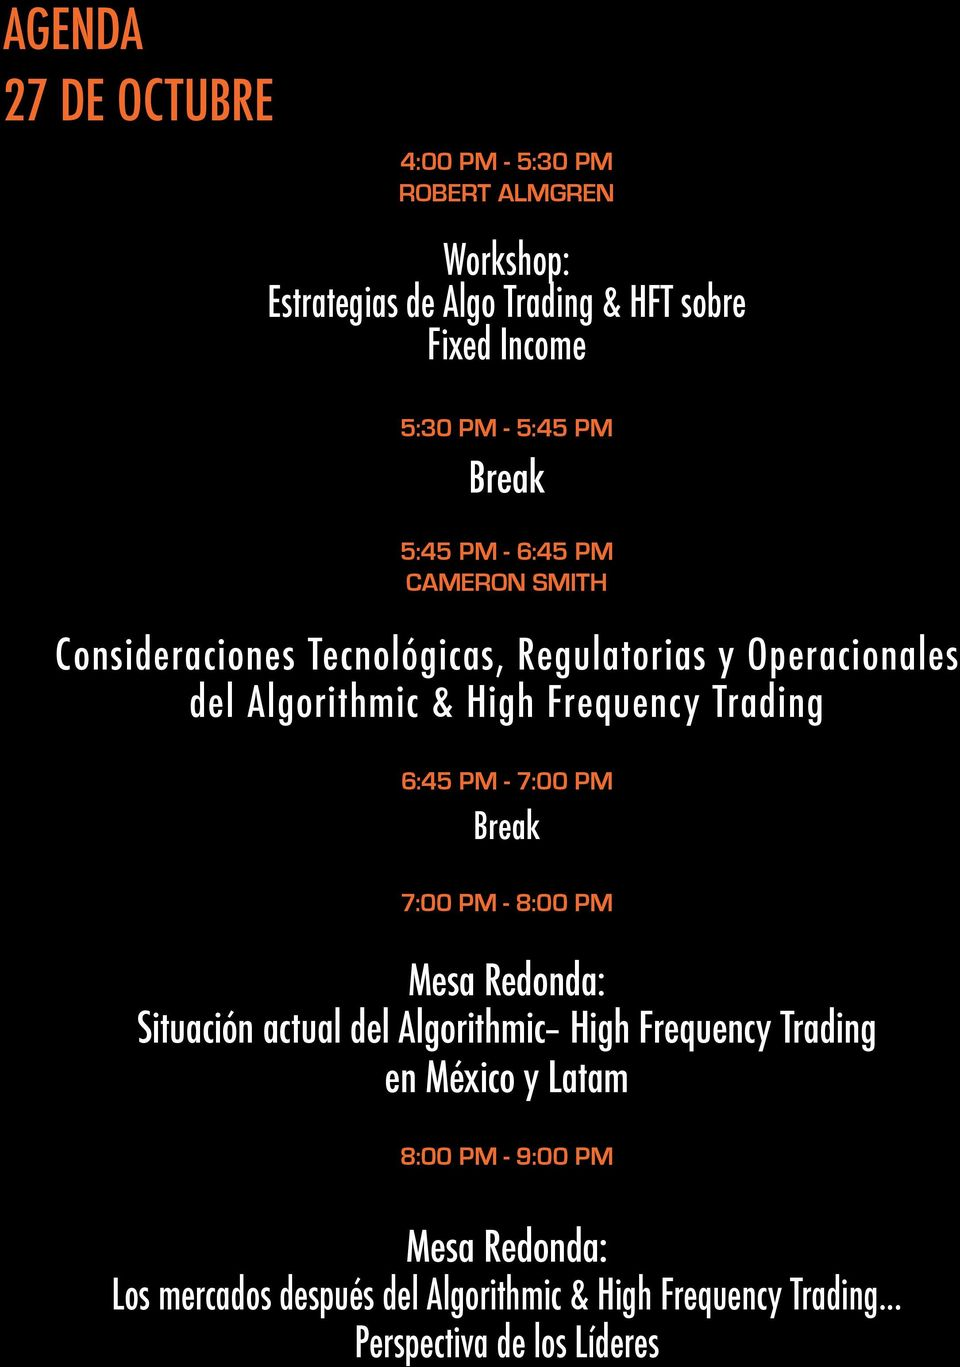 Frequency Trading 6:45 PM - 7:00 PM Break 7:00 PM - 8:00 PM Mesa Redonda: Situación actual del Algorithmic High Frequency Trading